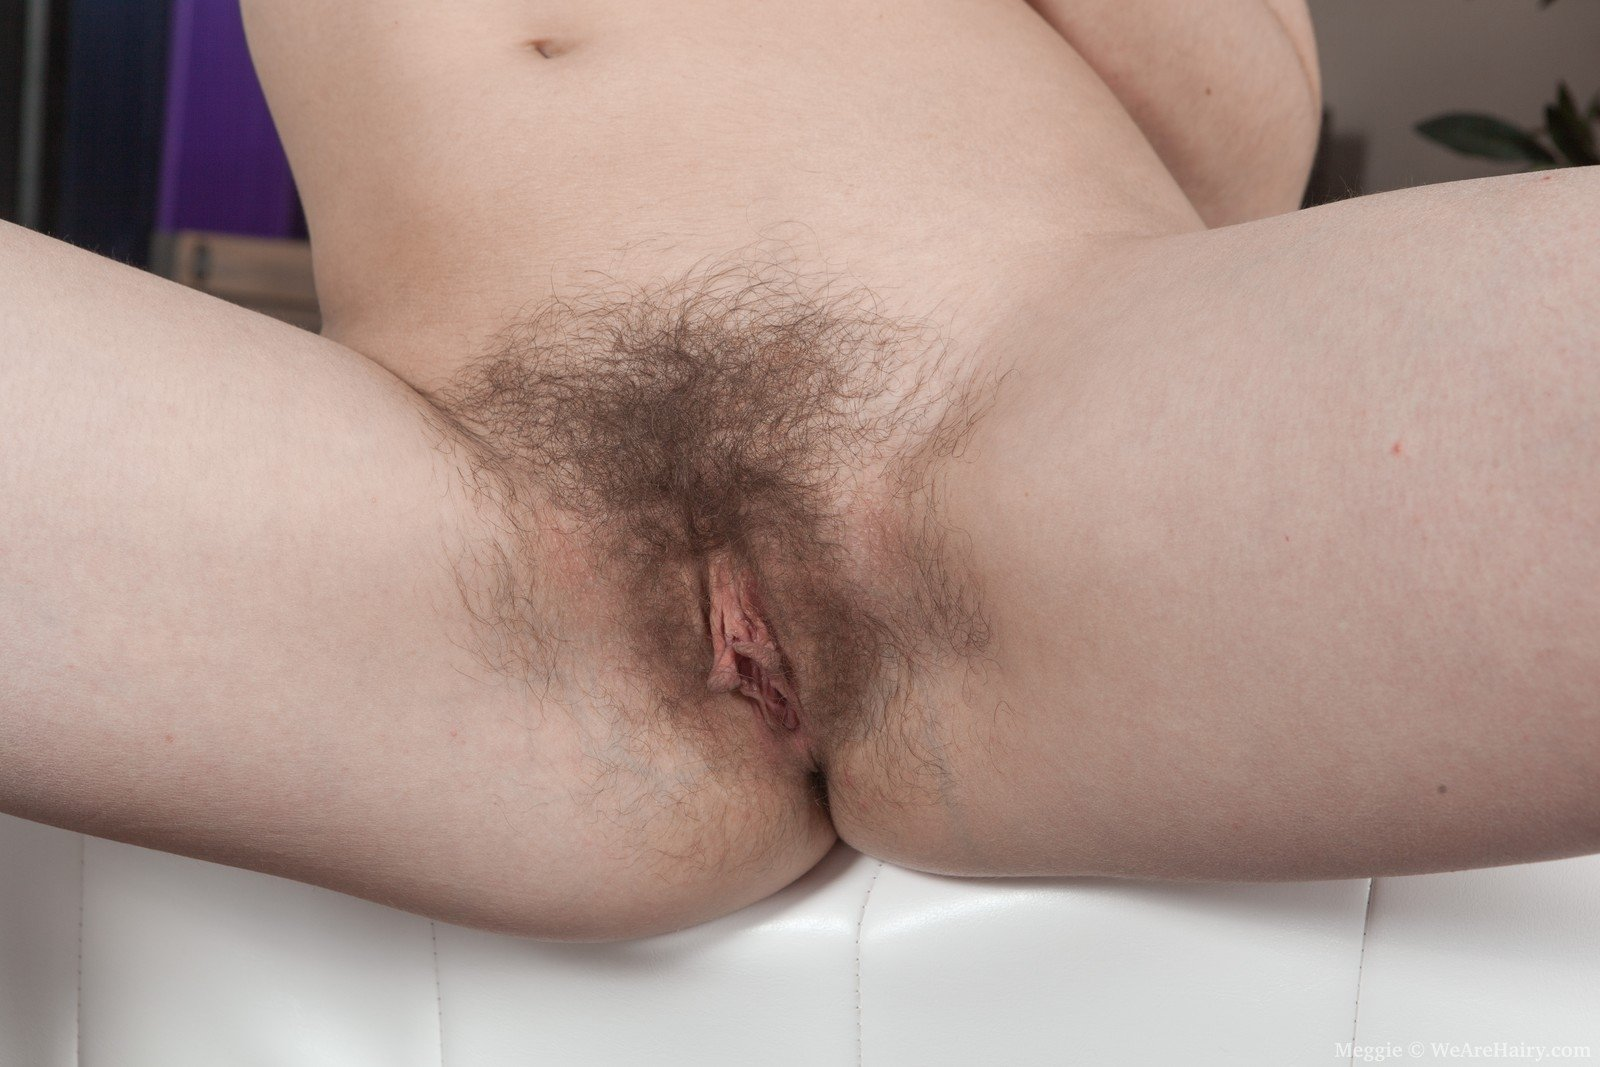 Knoxville area swingers Teens small butt